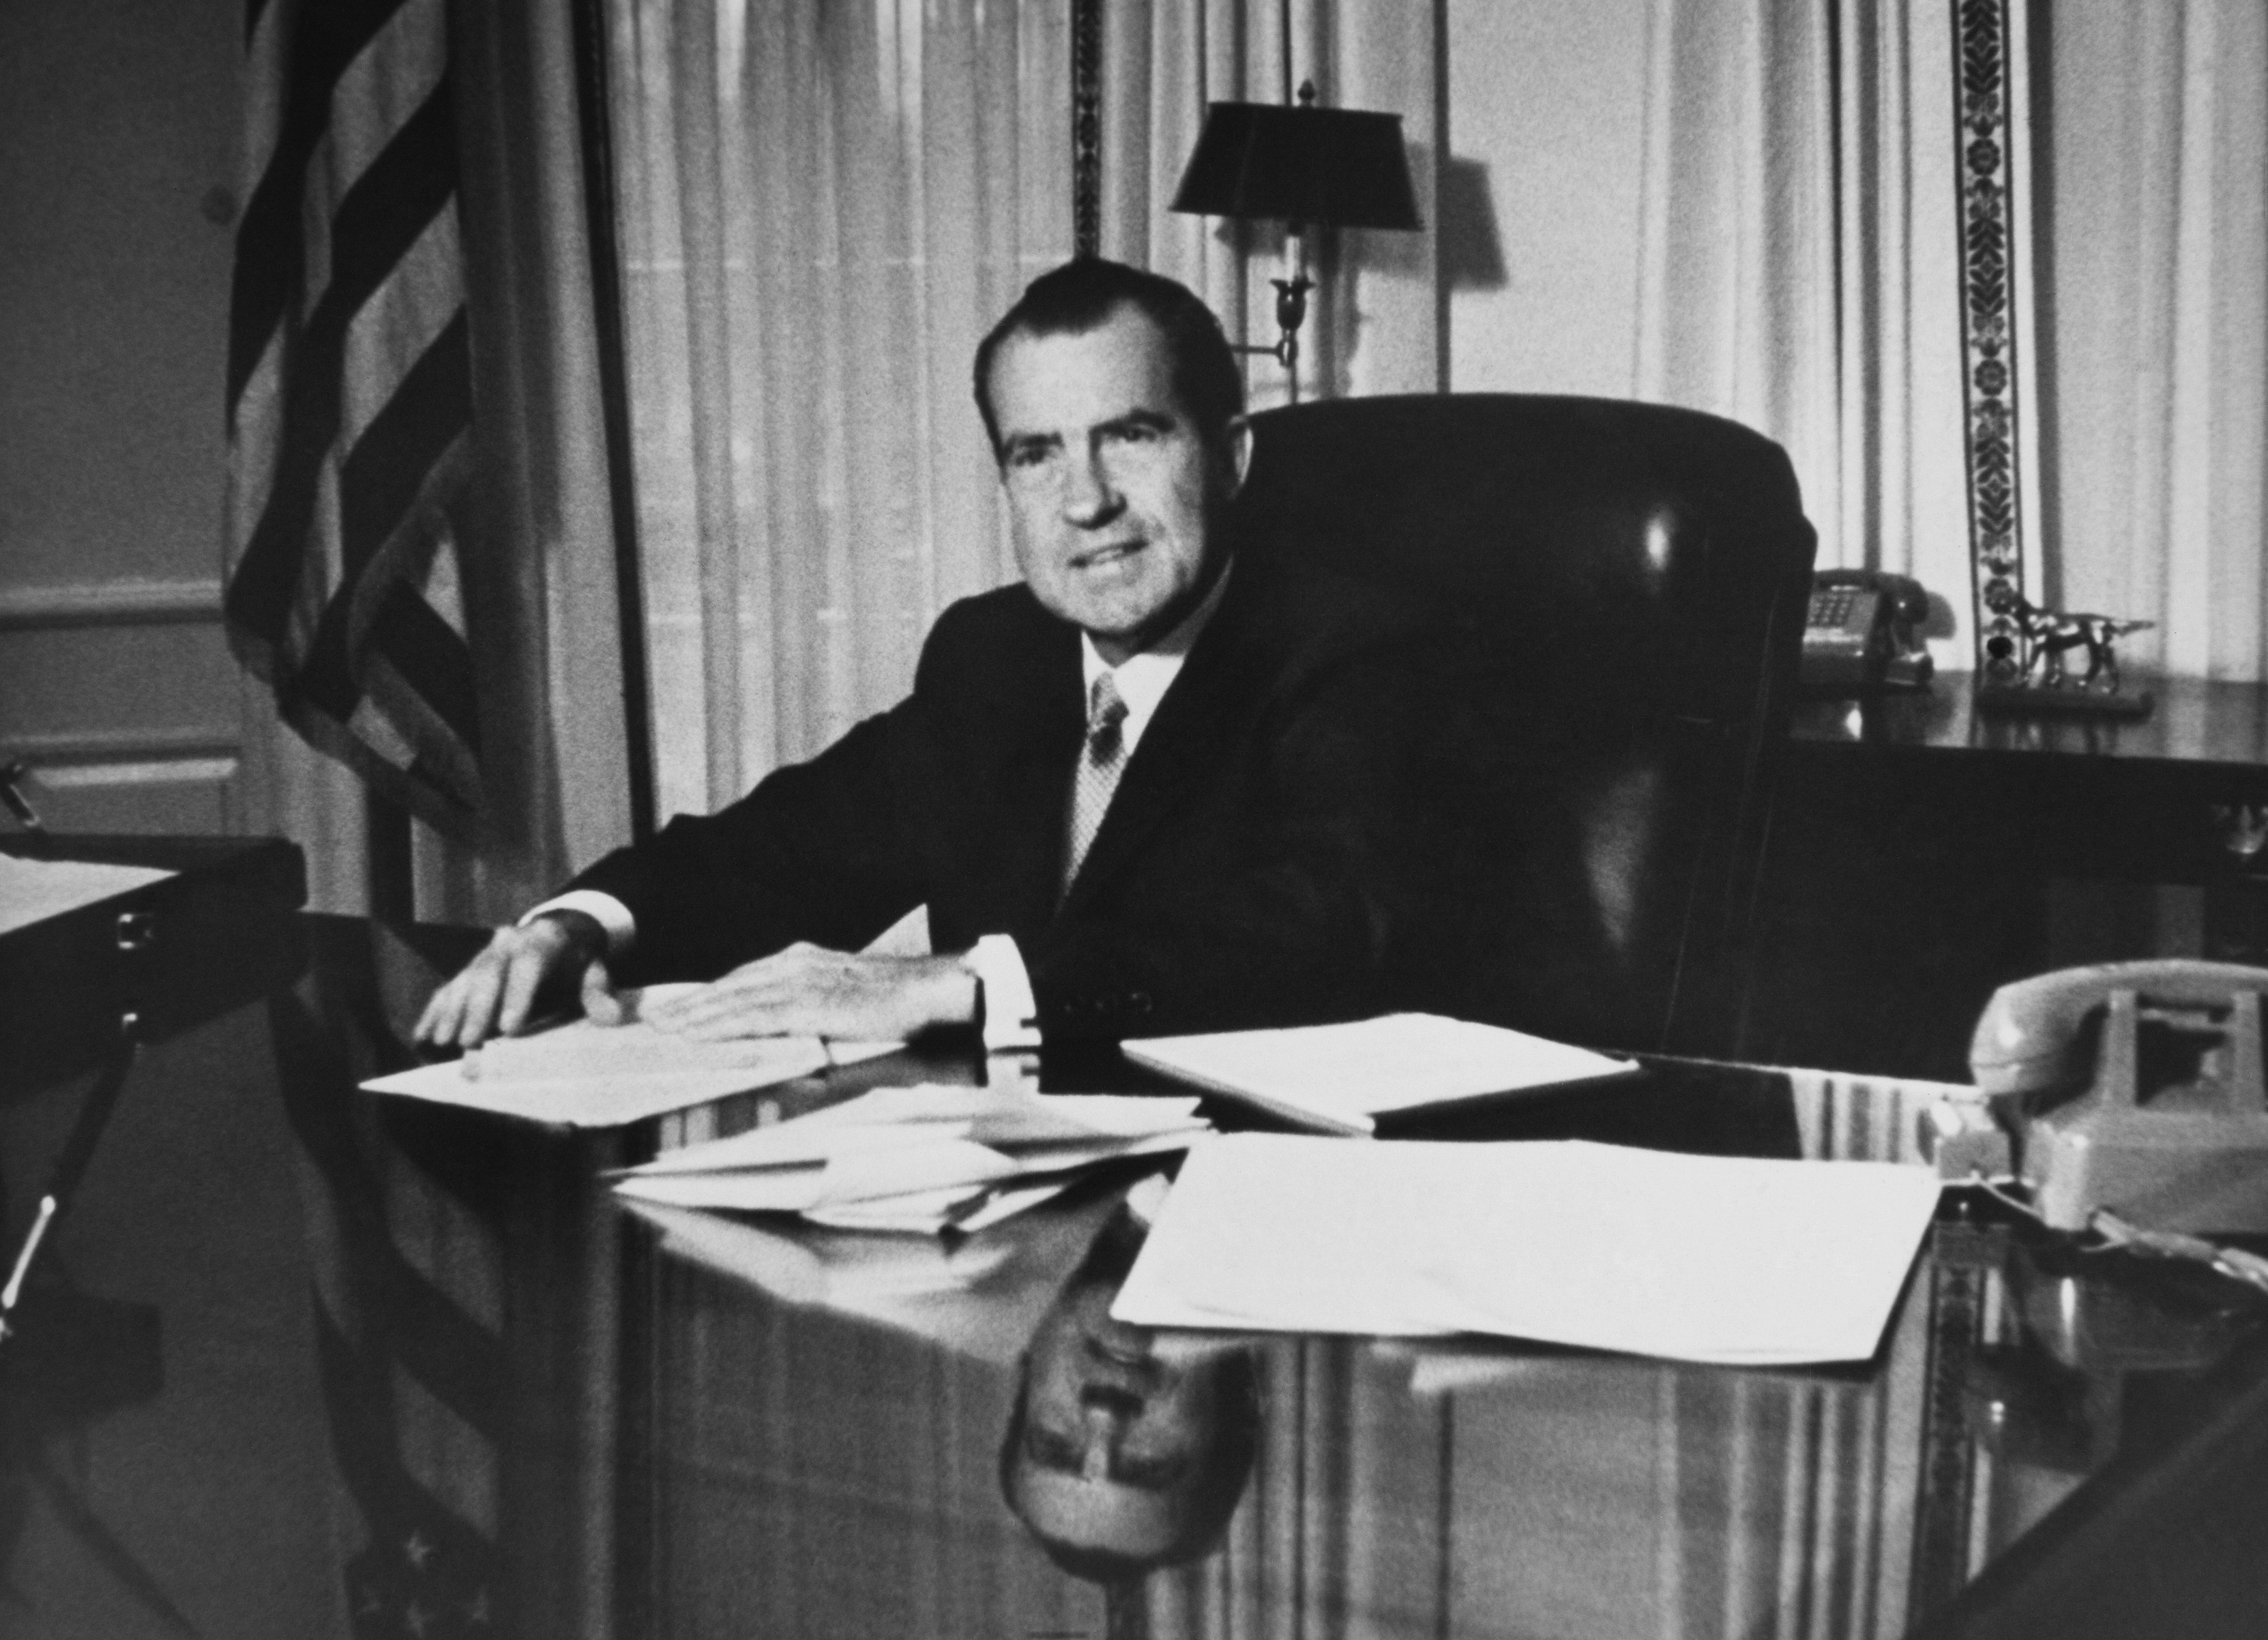 President Nixon at the White House in 1969